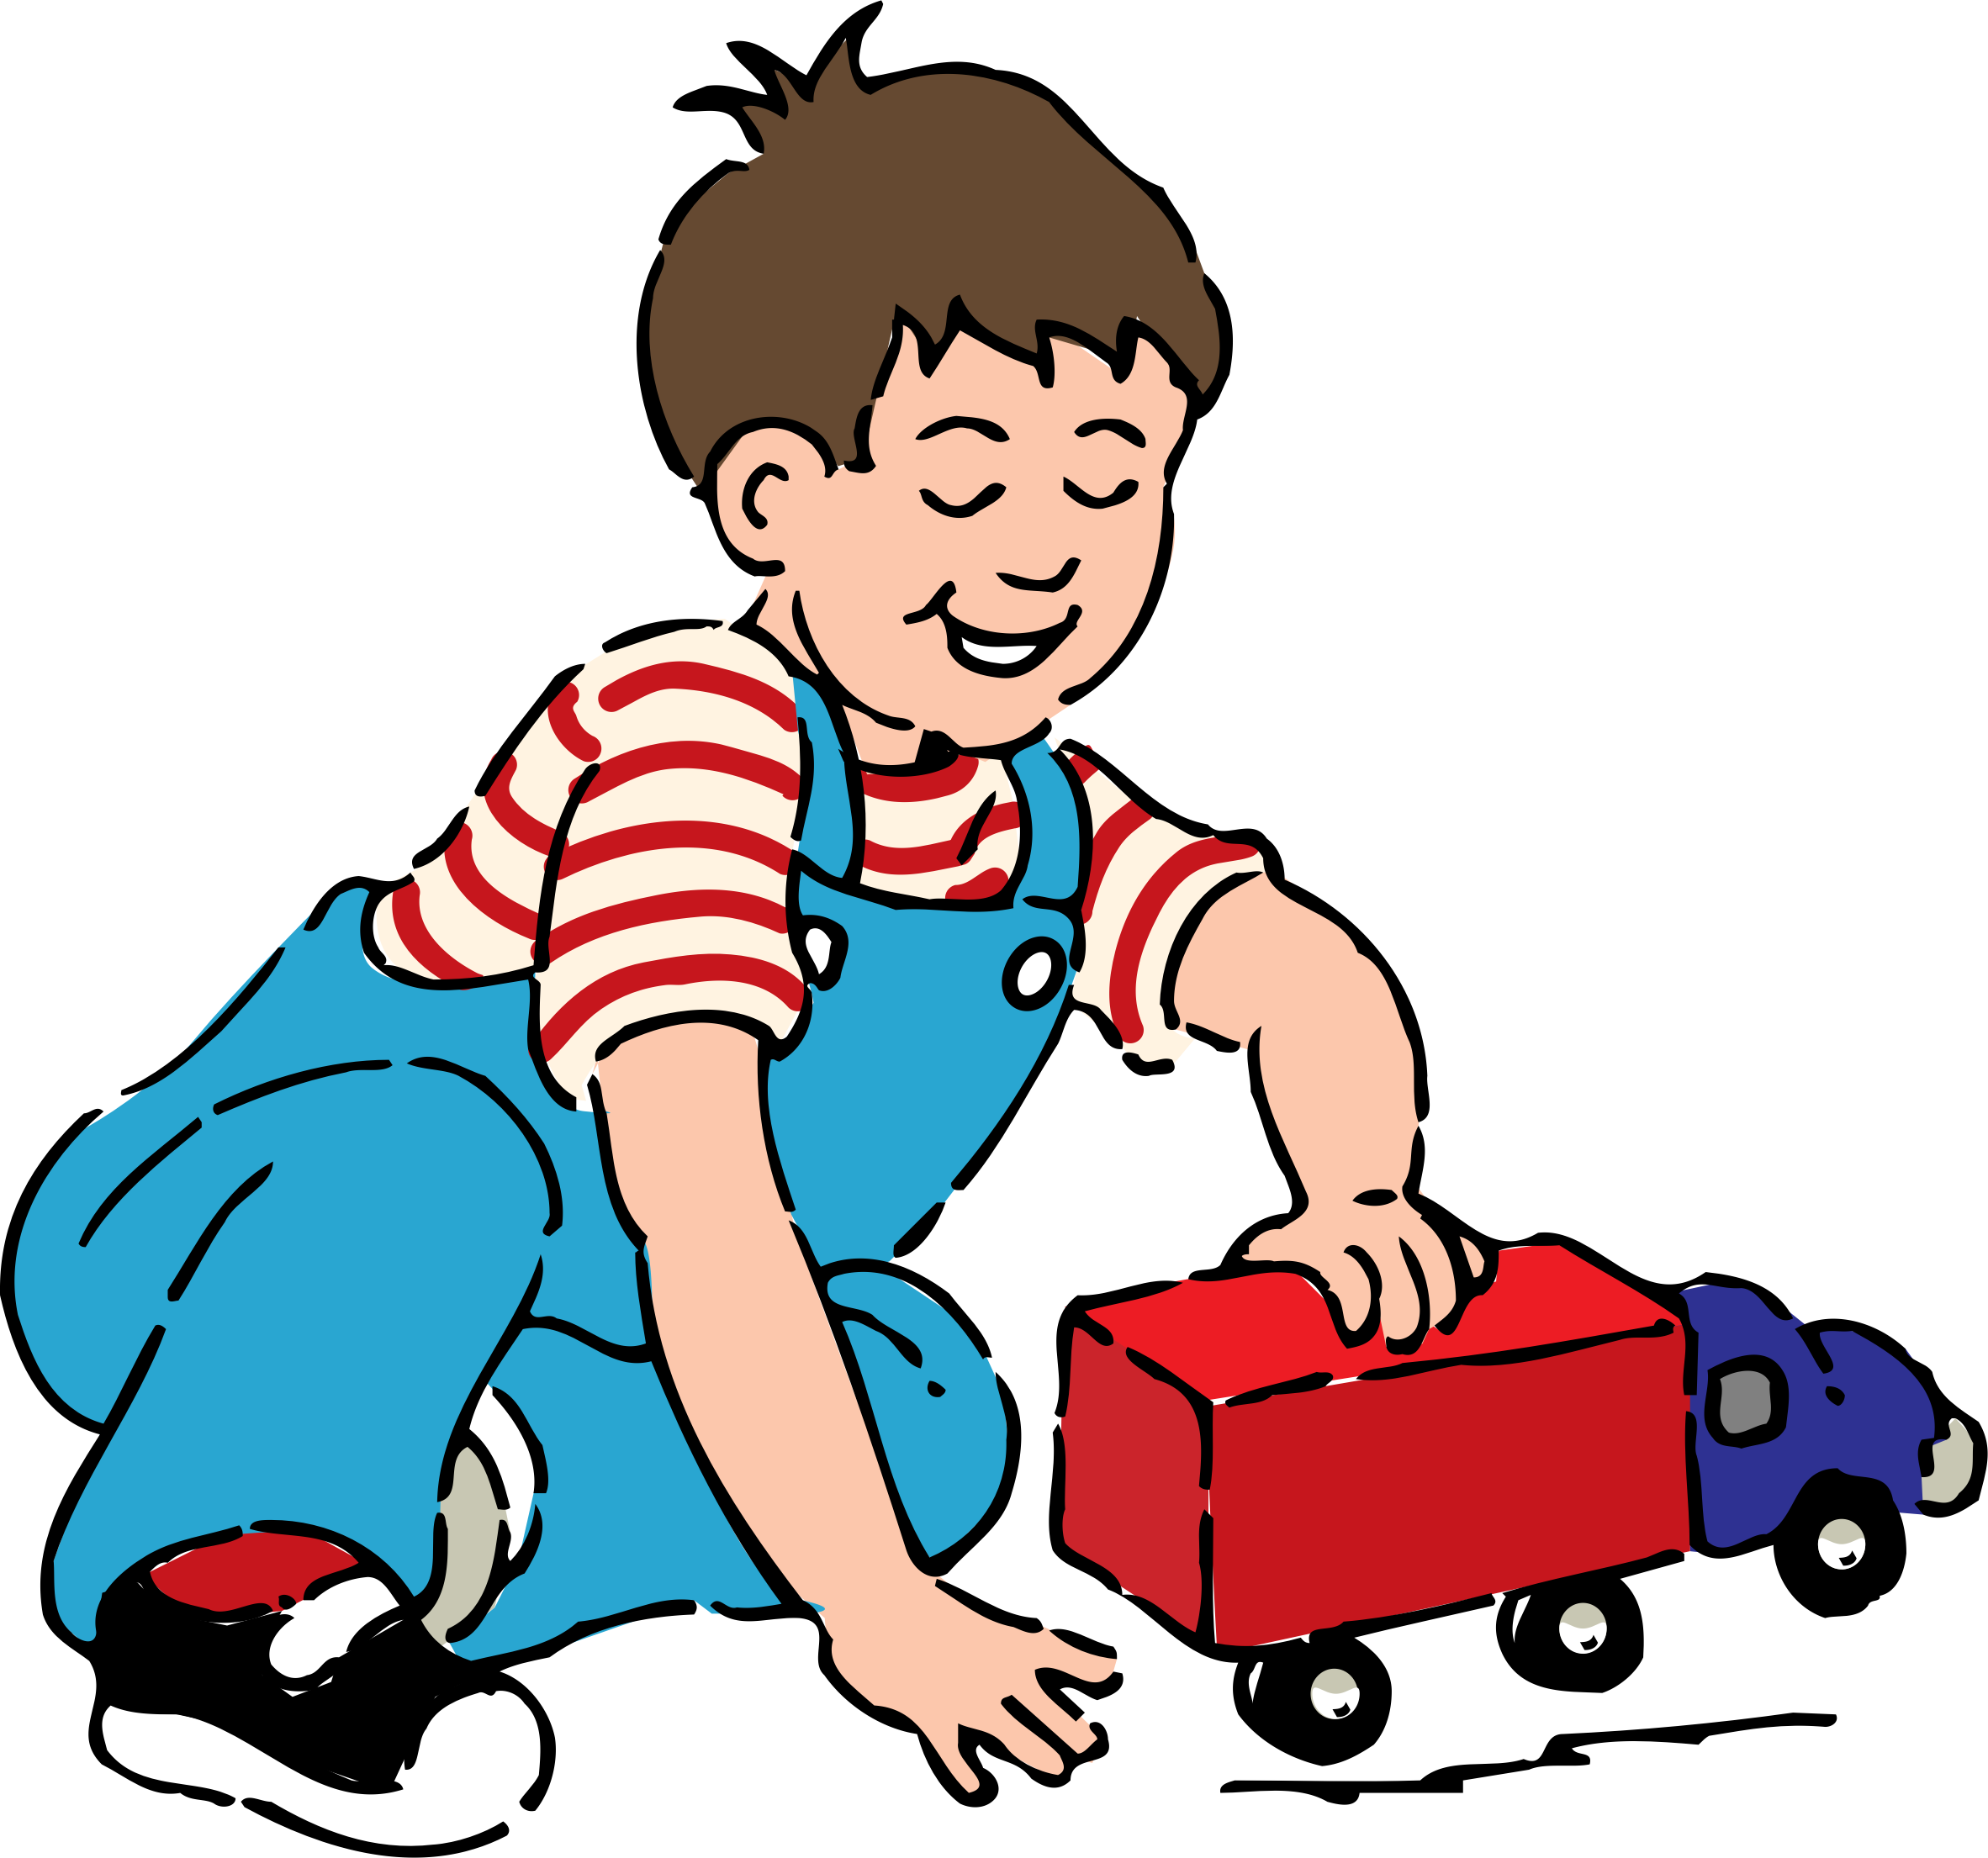 Boy playing with truck. People clipart toy